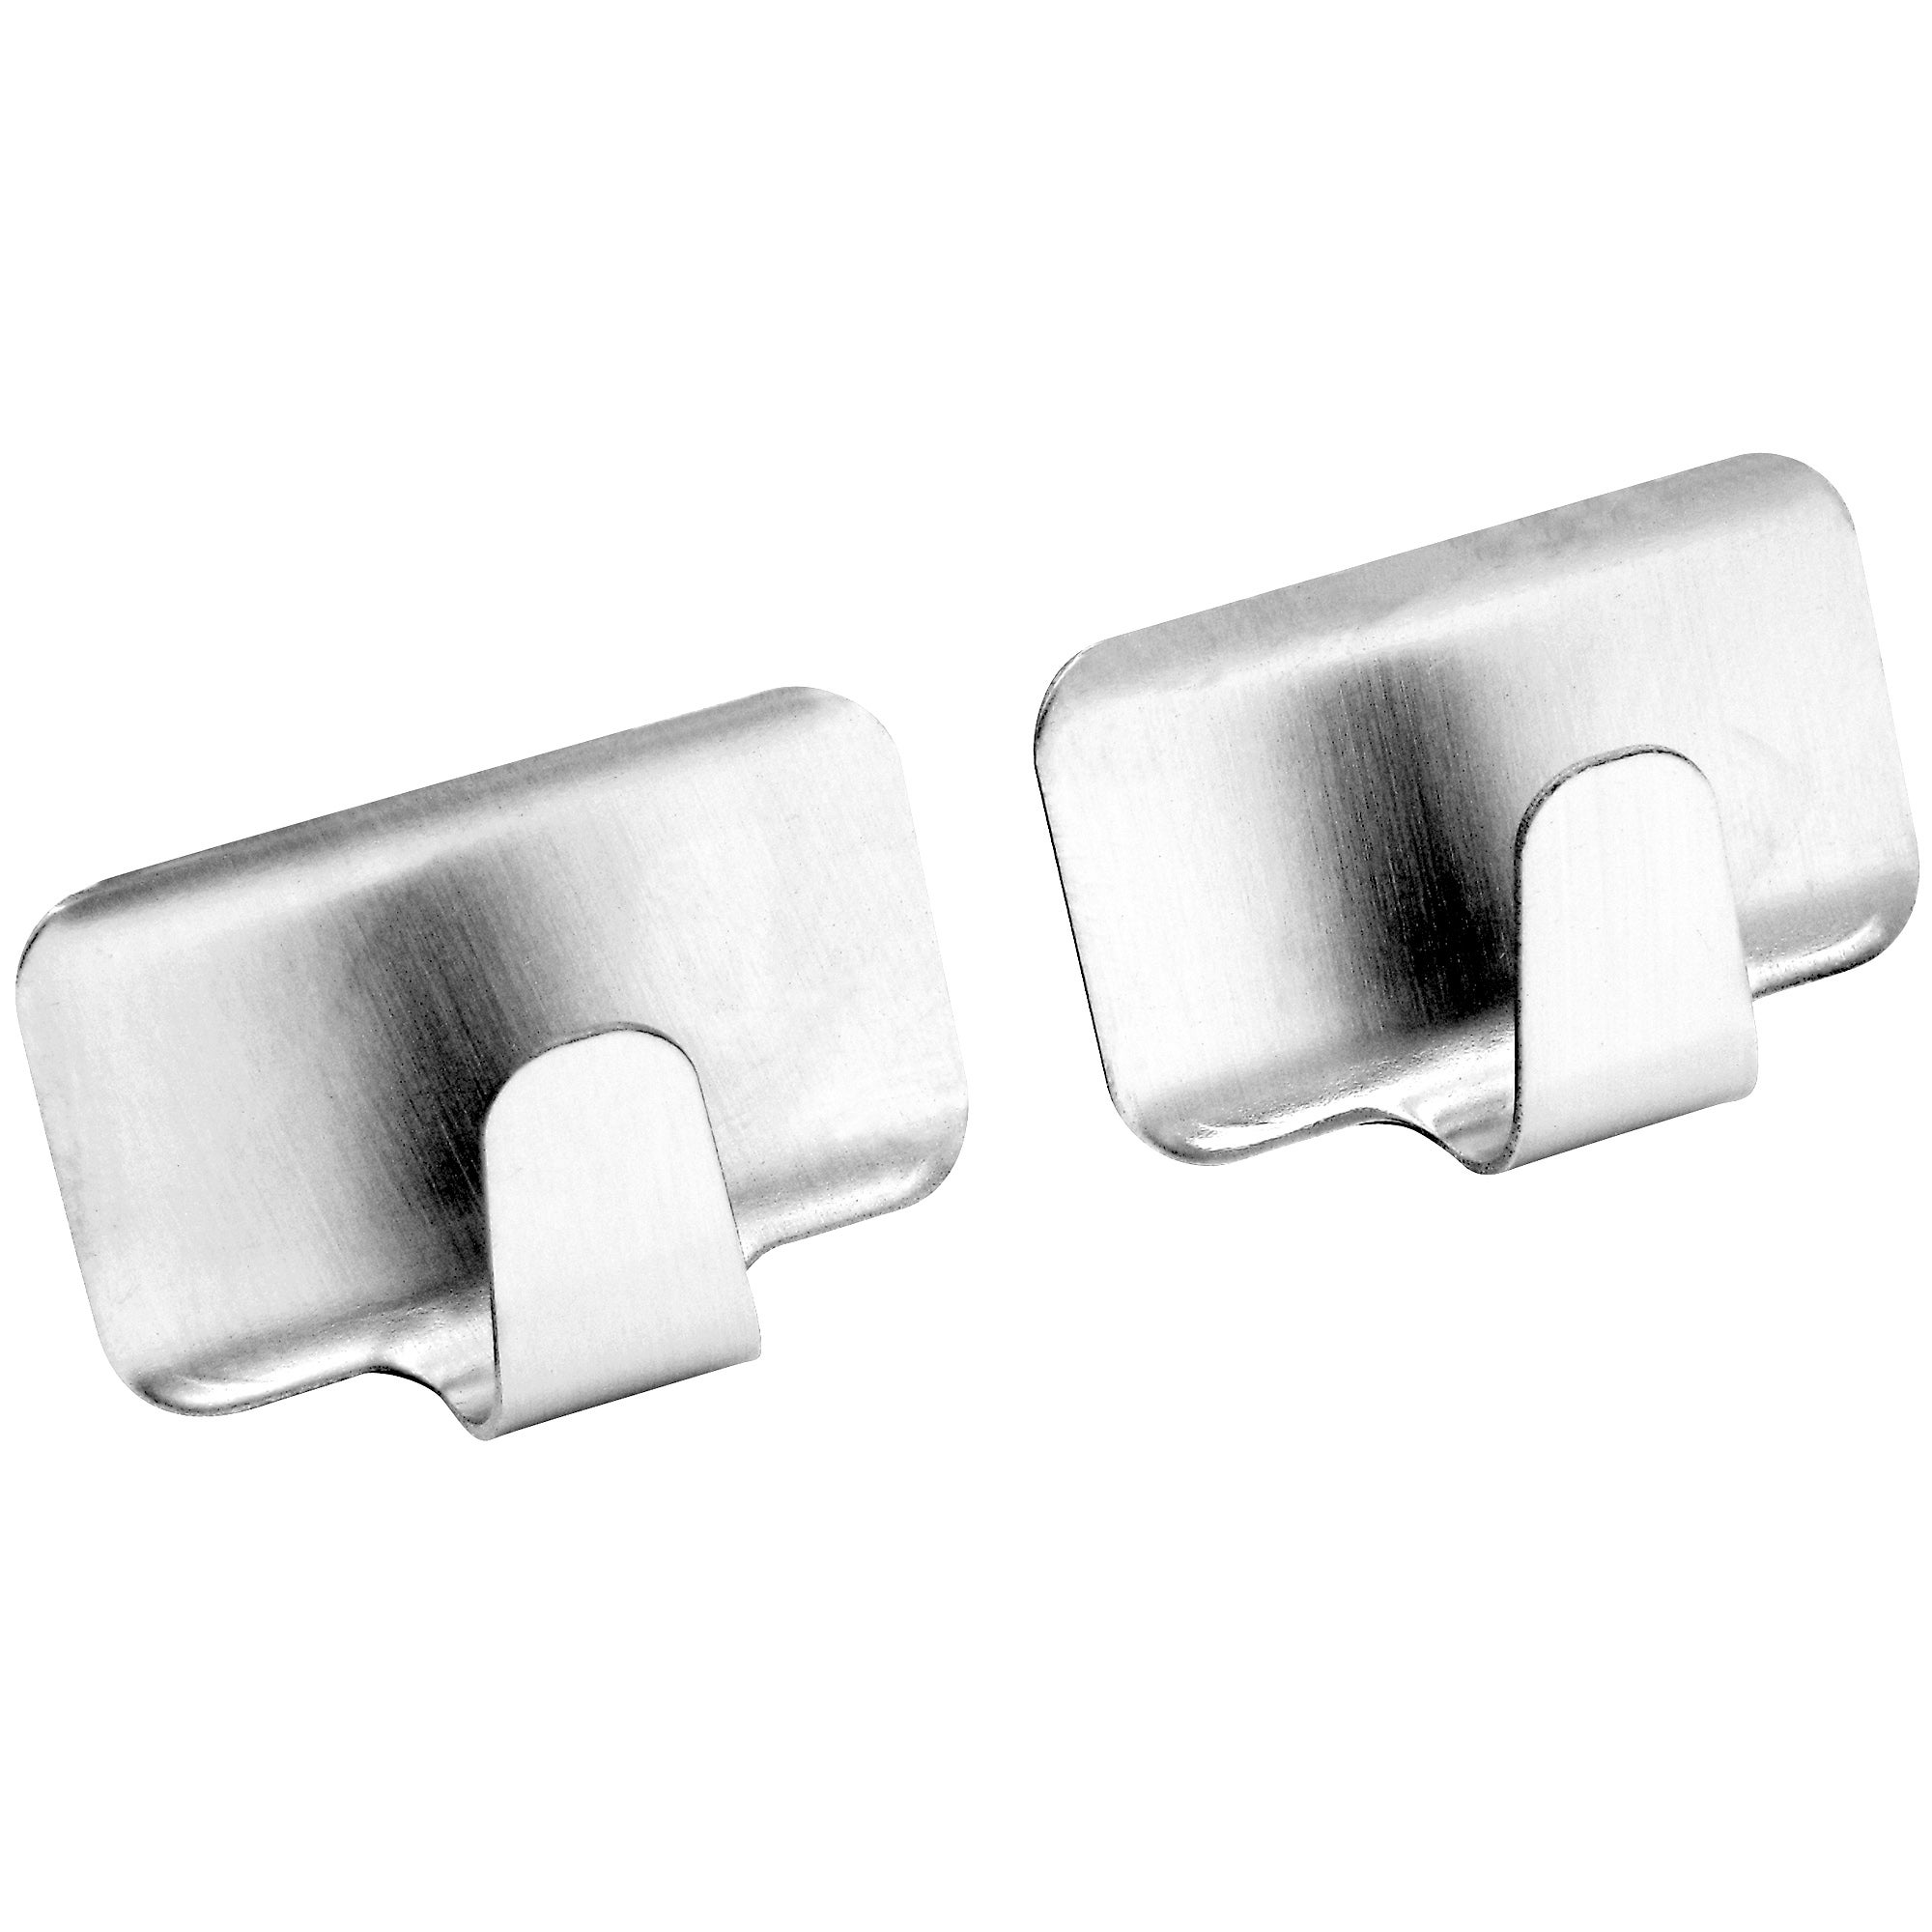 Pack of 2 Rectangular Stainless Steel Hooks